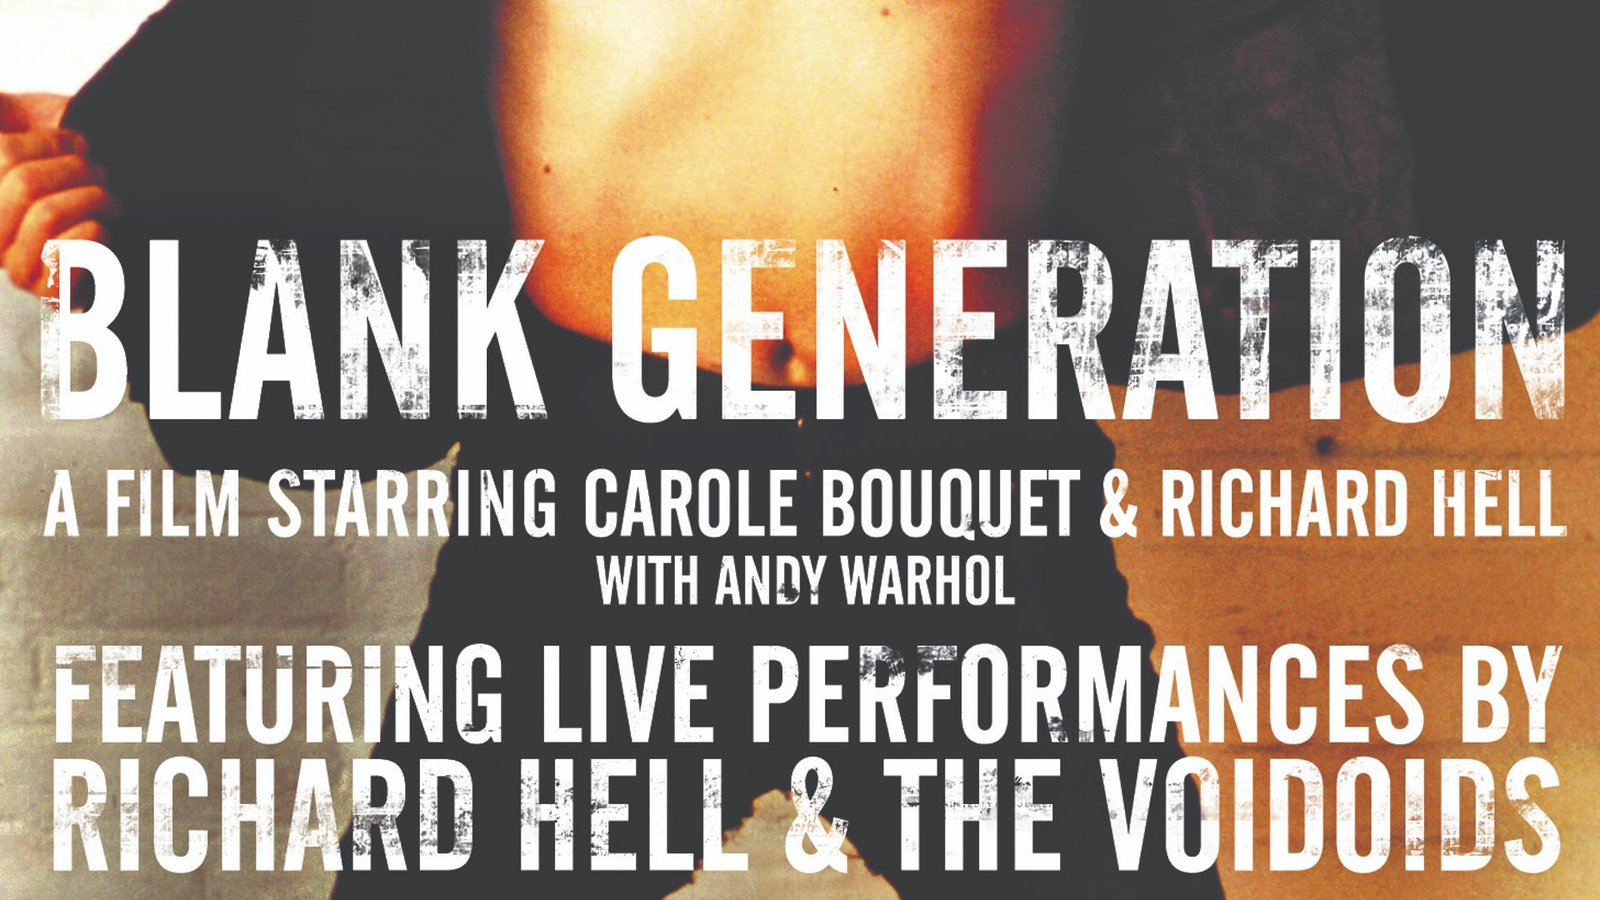 Blank Generation - Classic 1980 Film Starring Richard Hell as a Down and Out NYC Musician